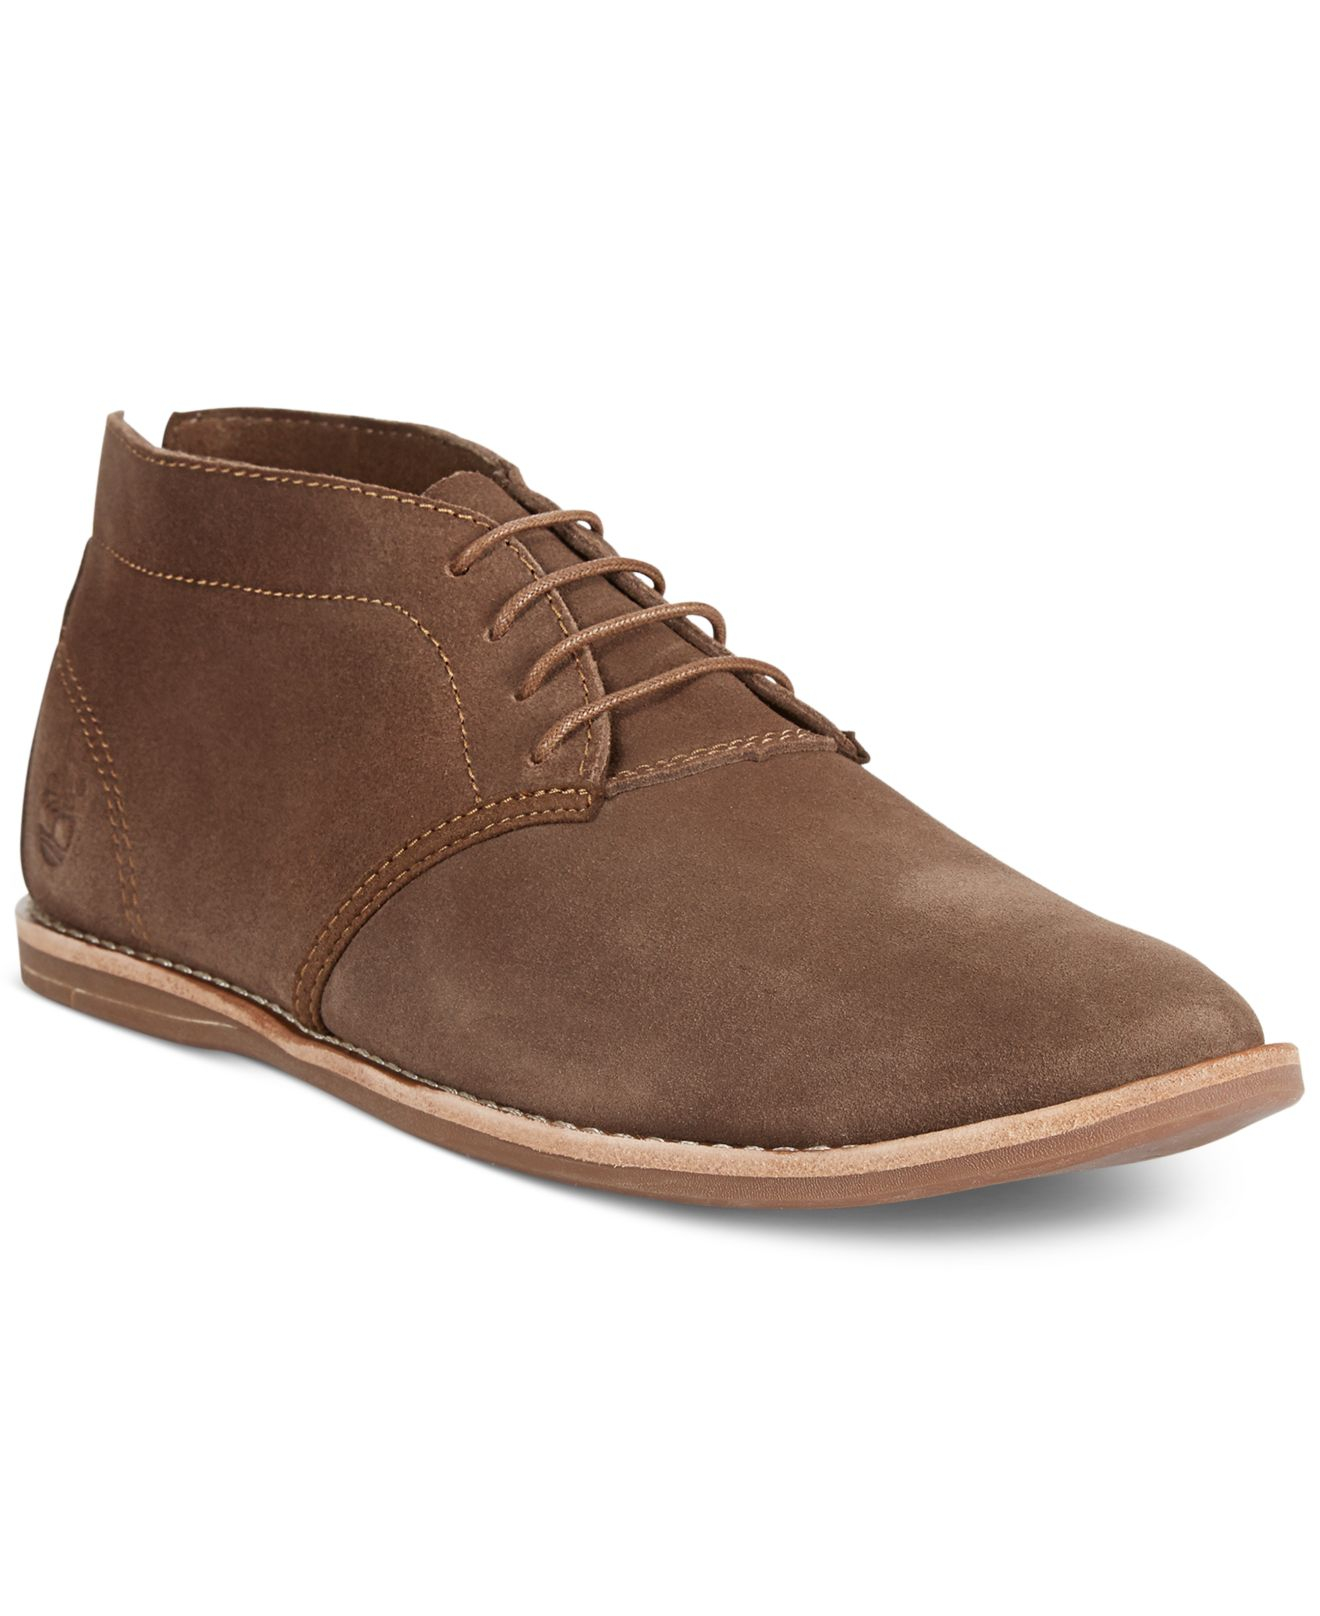 70d36fca25ef Lyst - Timberland Earthkeepers Revenia Chukka Boots in Brown for Men